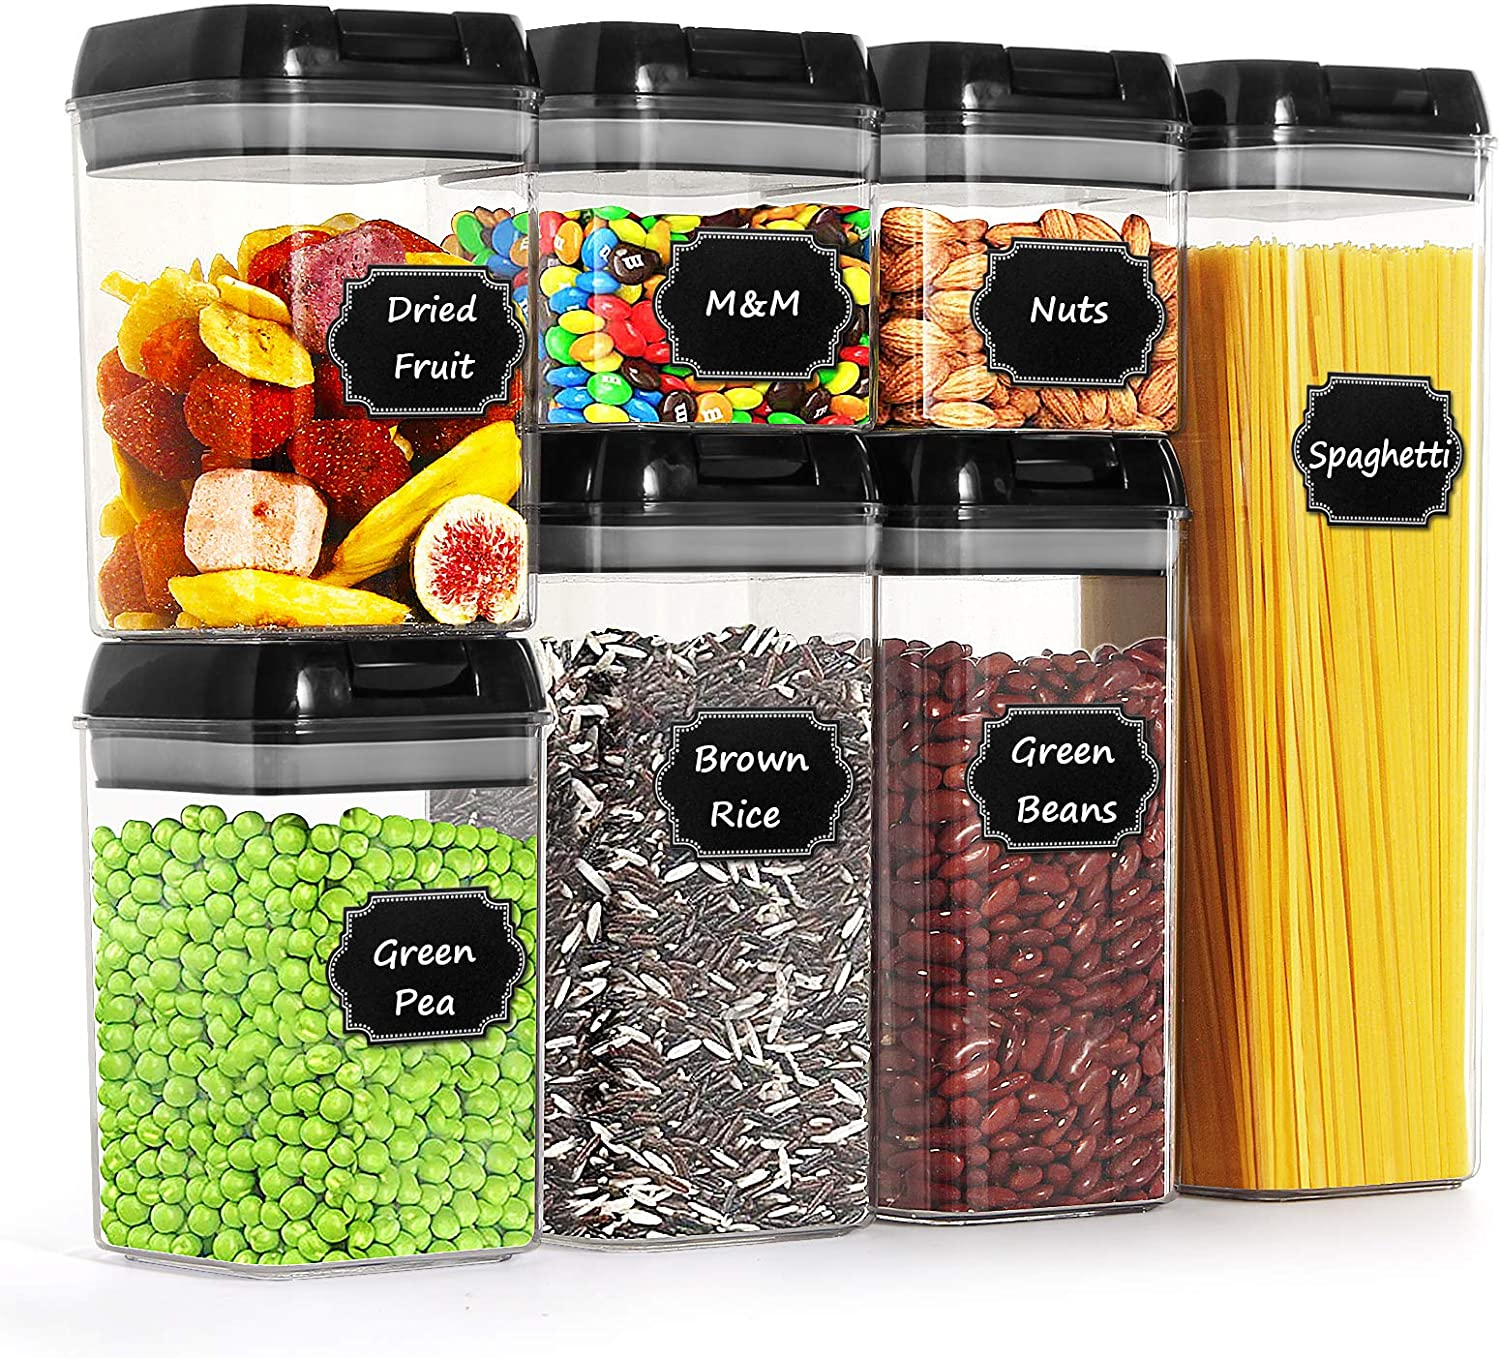 Airtight Food Storage Containers by Paincco, BPA Free Black Cereal Storage Containers Set of 7 for Kitchen Pantry Organization, with 20 Labels & 1 Marker